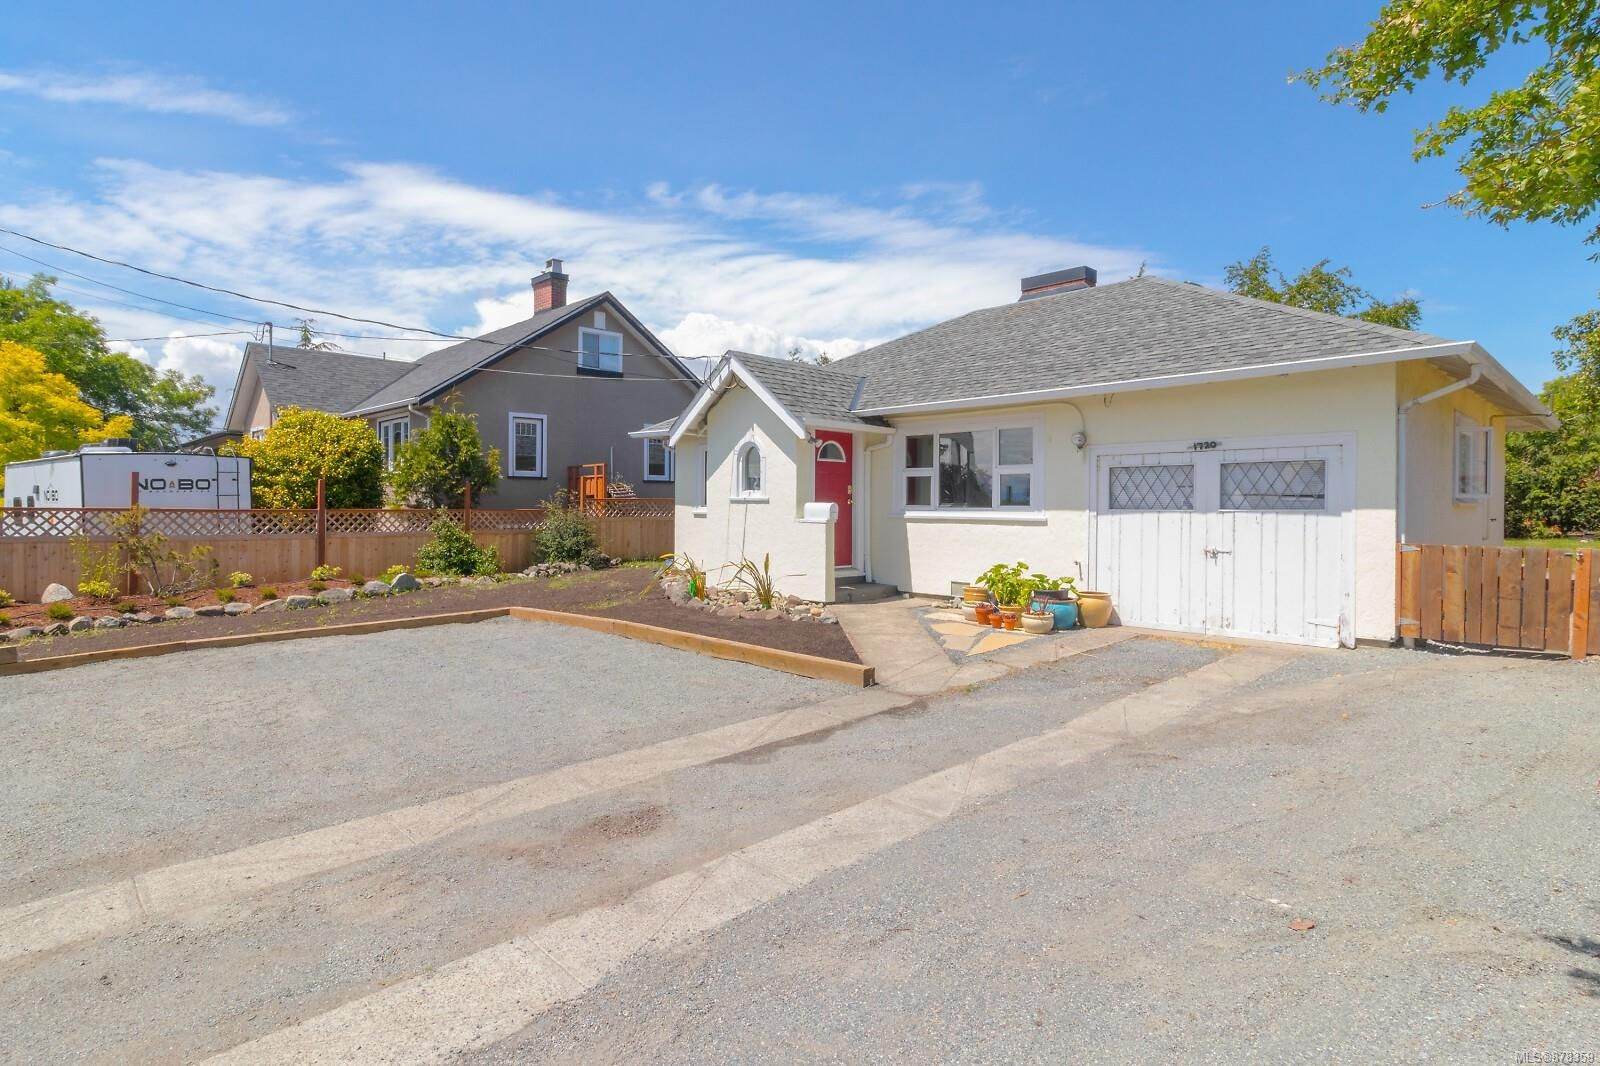 Main Photo: 1720 Lansdowne Rd in : SE Camosun House for sale (Saanich East)  : MLS®# 878359